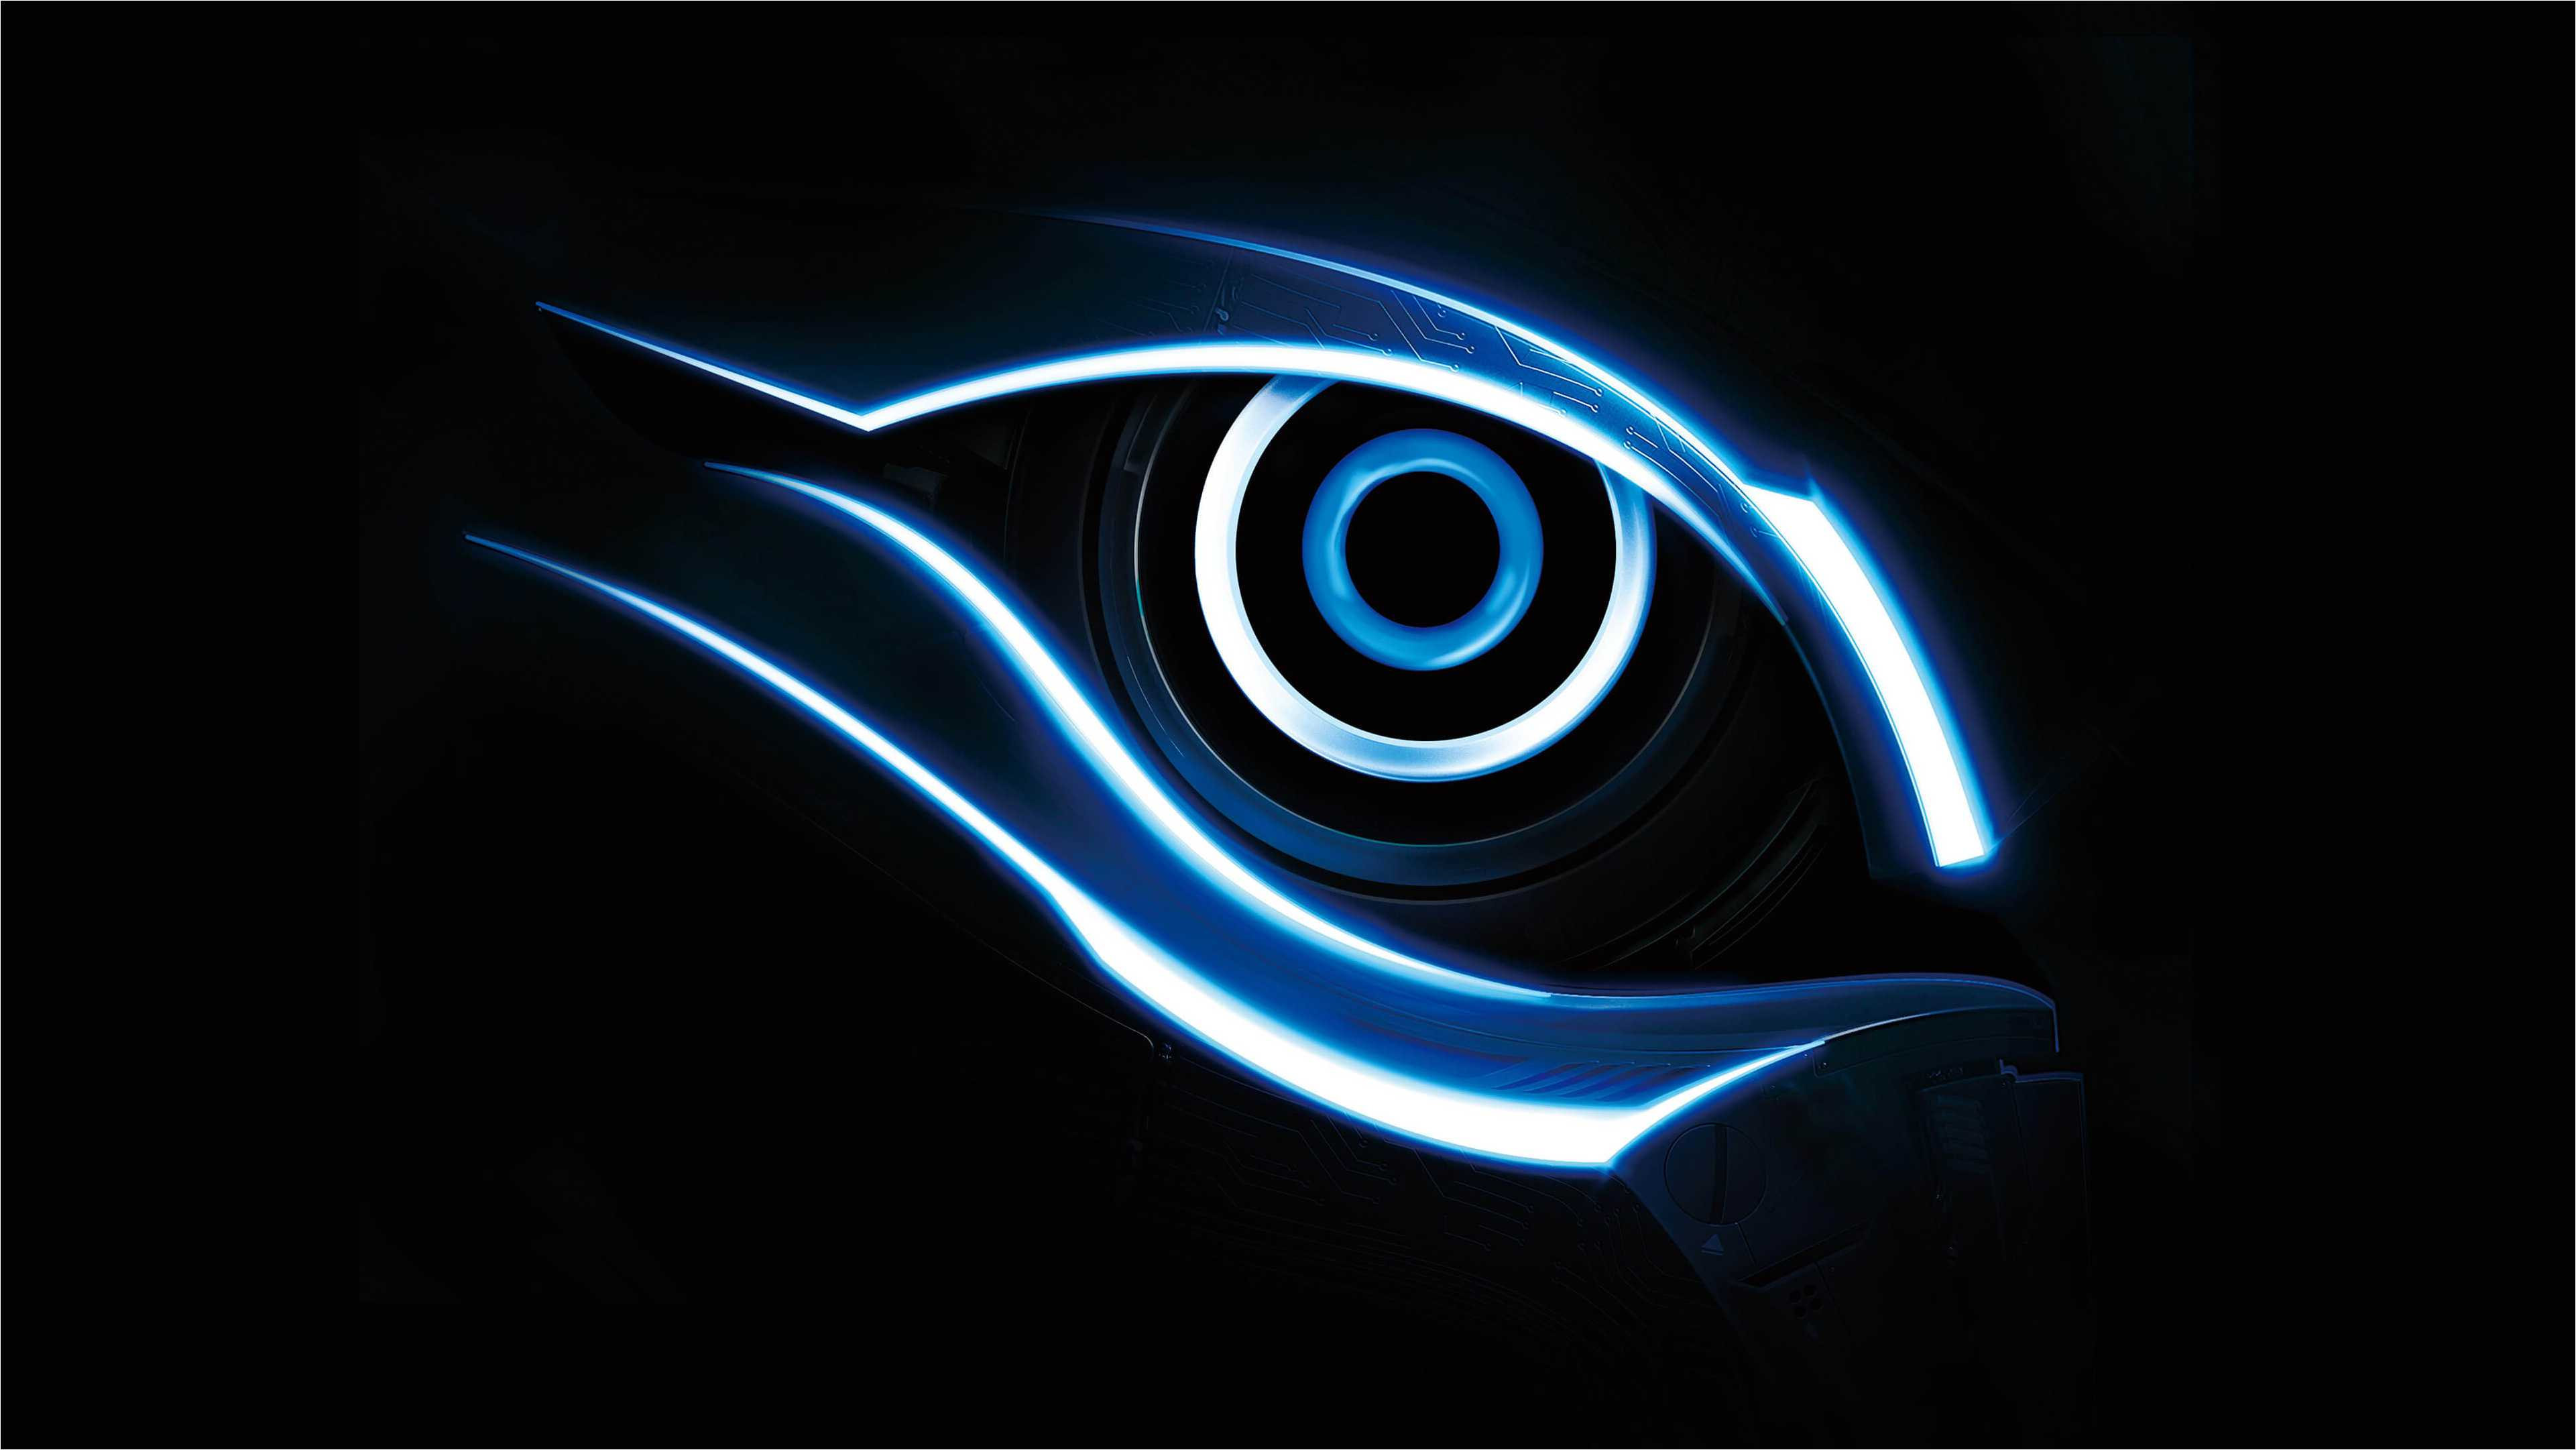 Gigabyte Wallpaper Posted By Ethan Tremblay